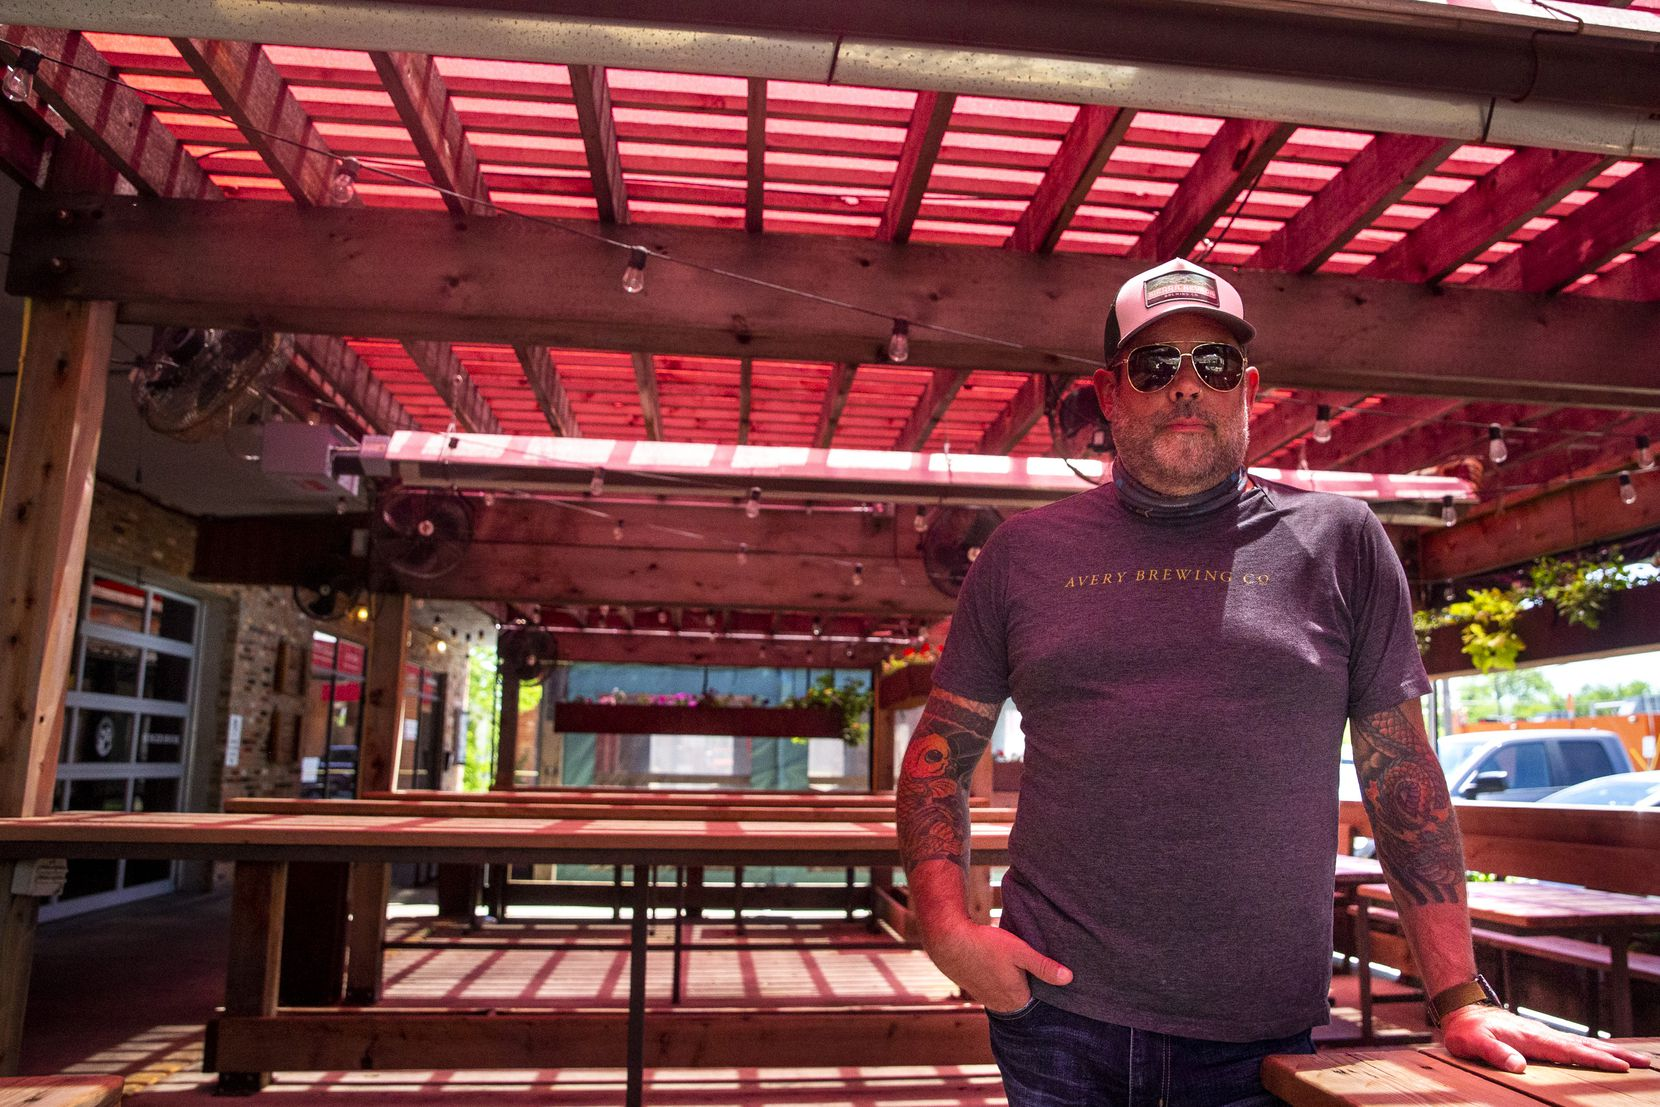 Owner Matt Tobin poses for a portrait outside of Goodfriend Beer Garden & Burger House in East Dallas on Friday, May 1, 2020. Tobin said his businesses will remain take-out only for the time being, regardless of the state allowing restaurant businesses to reopen to dine-in customers under certain parameters.